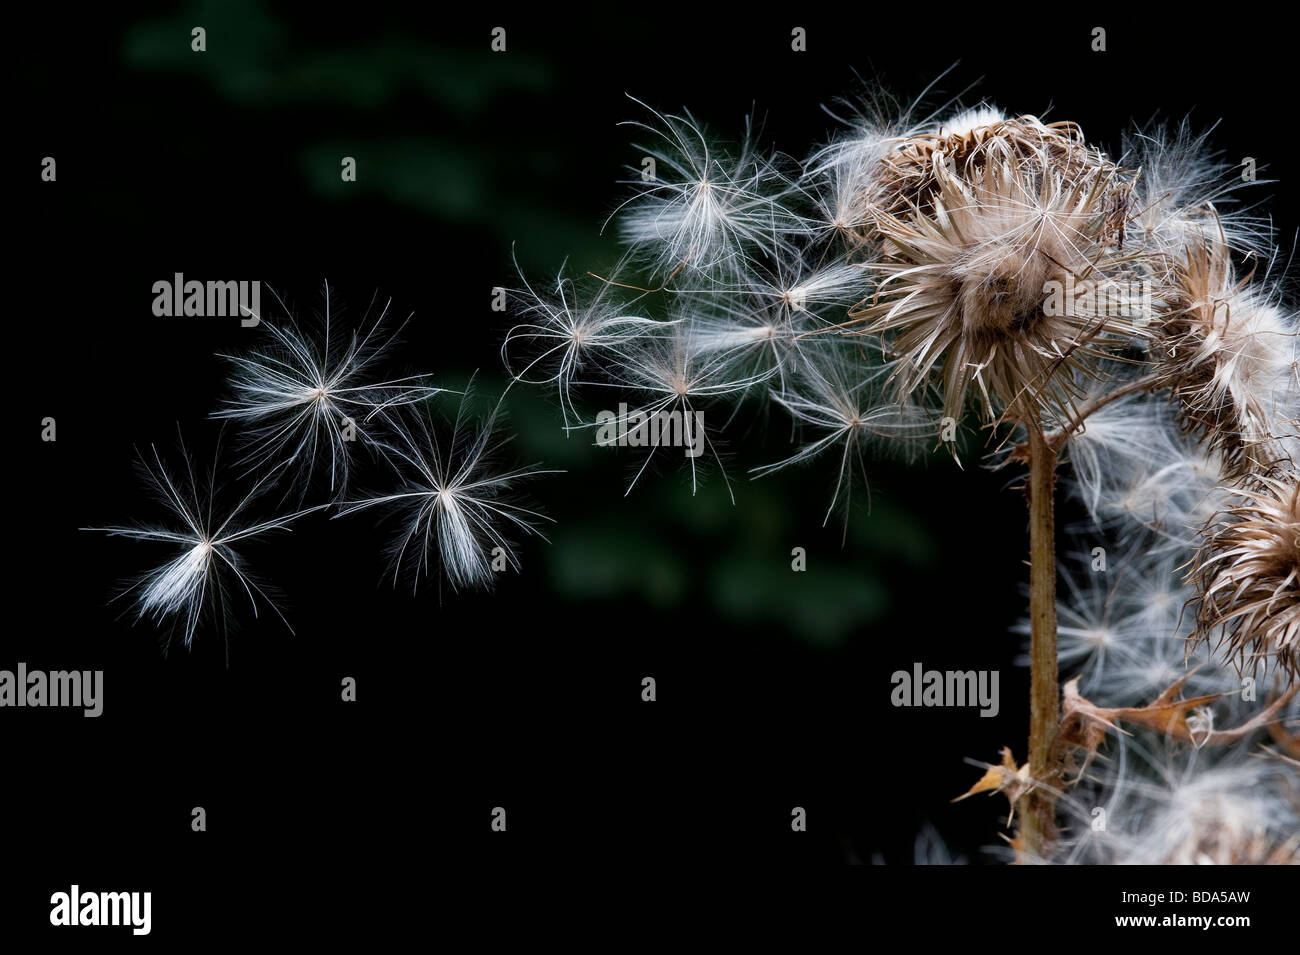 Spear thistle seeds blowing in wind from seedhead dark background - Stock Image